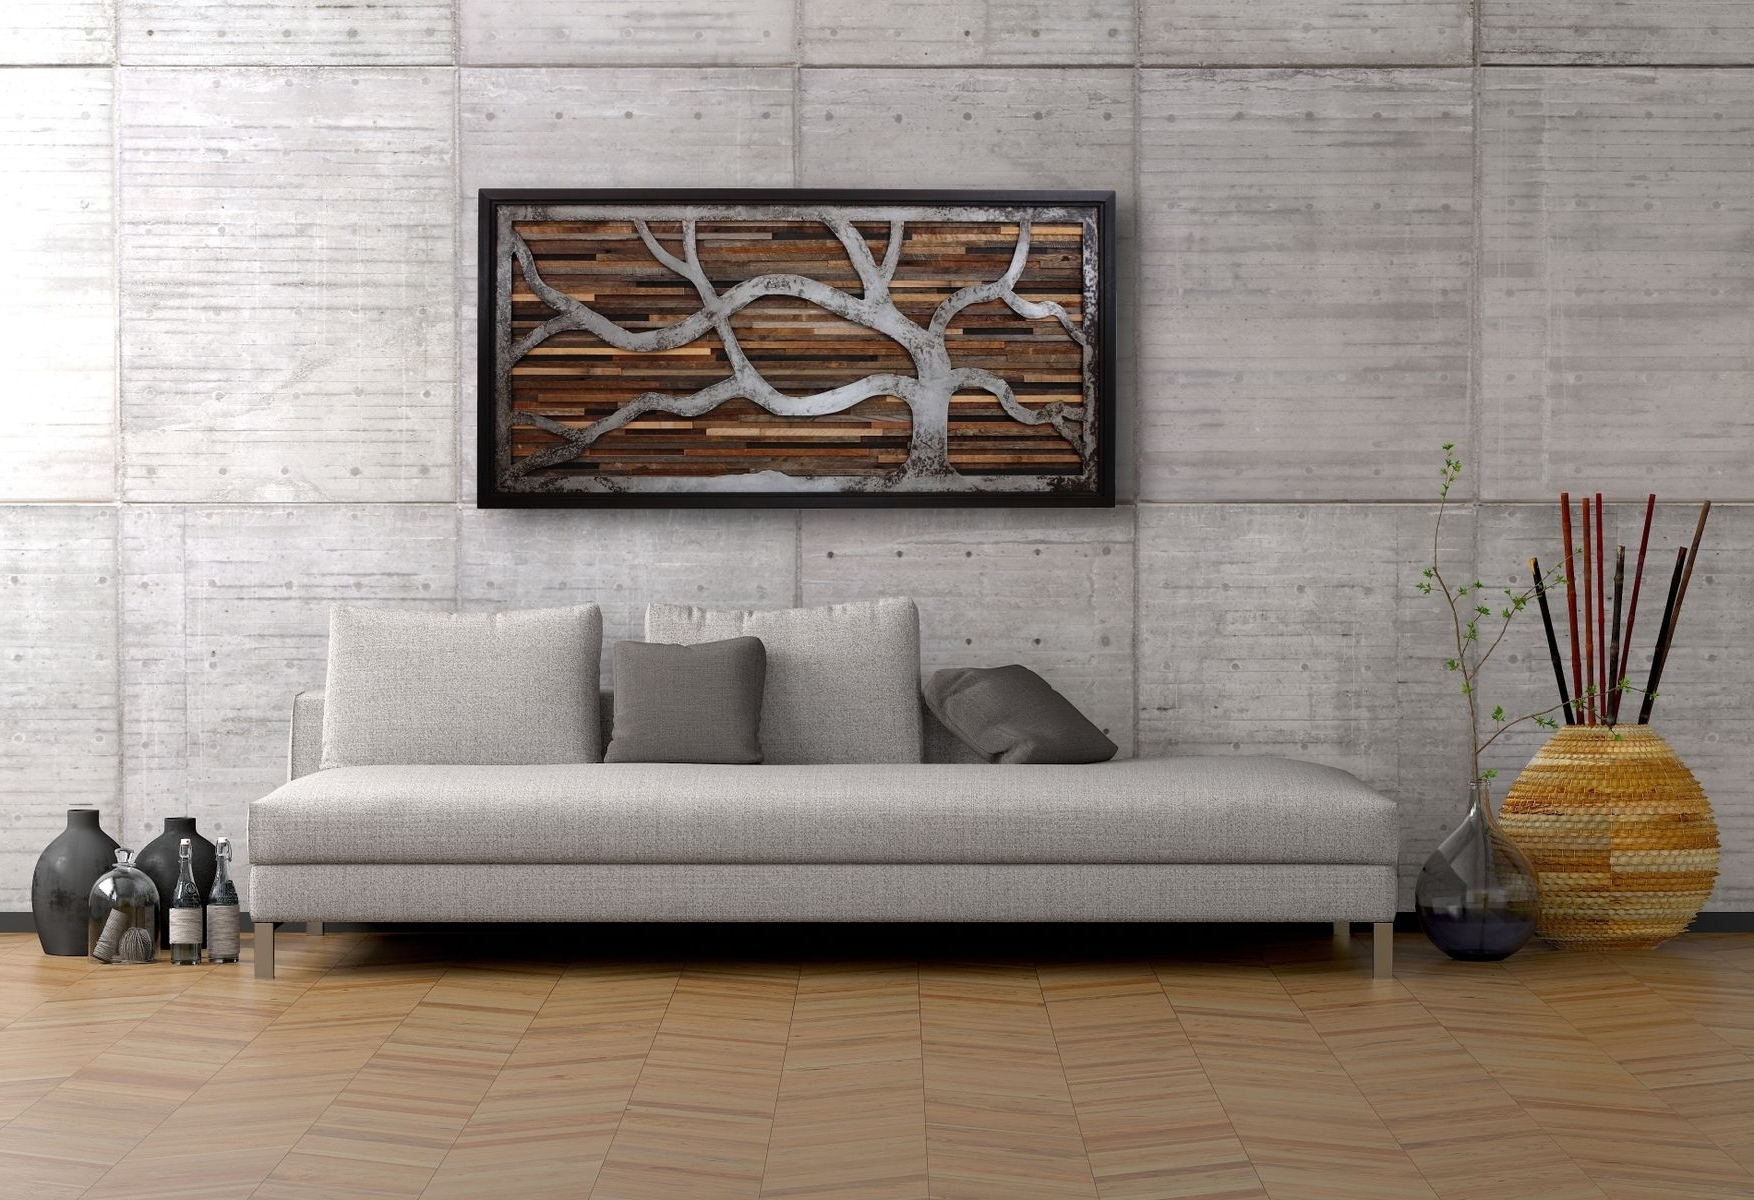 Reclaimed Wood Wall Art Intended For Fashionable Handmade Reclaimed Wood Wall Art Made Of Old Barnwood And Rustic (Gallery 2 of 15)